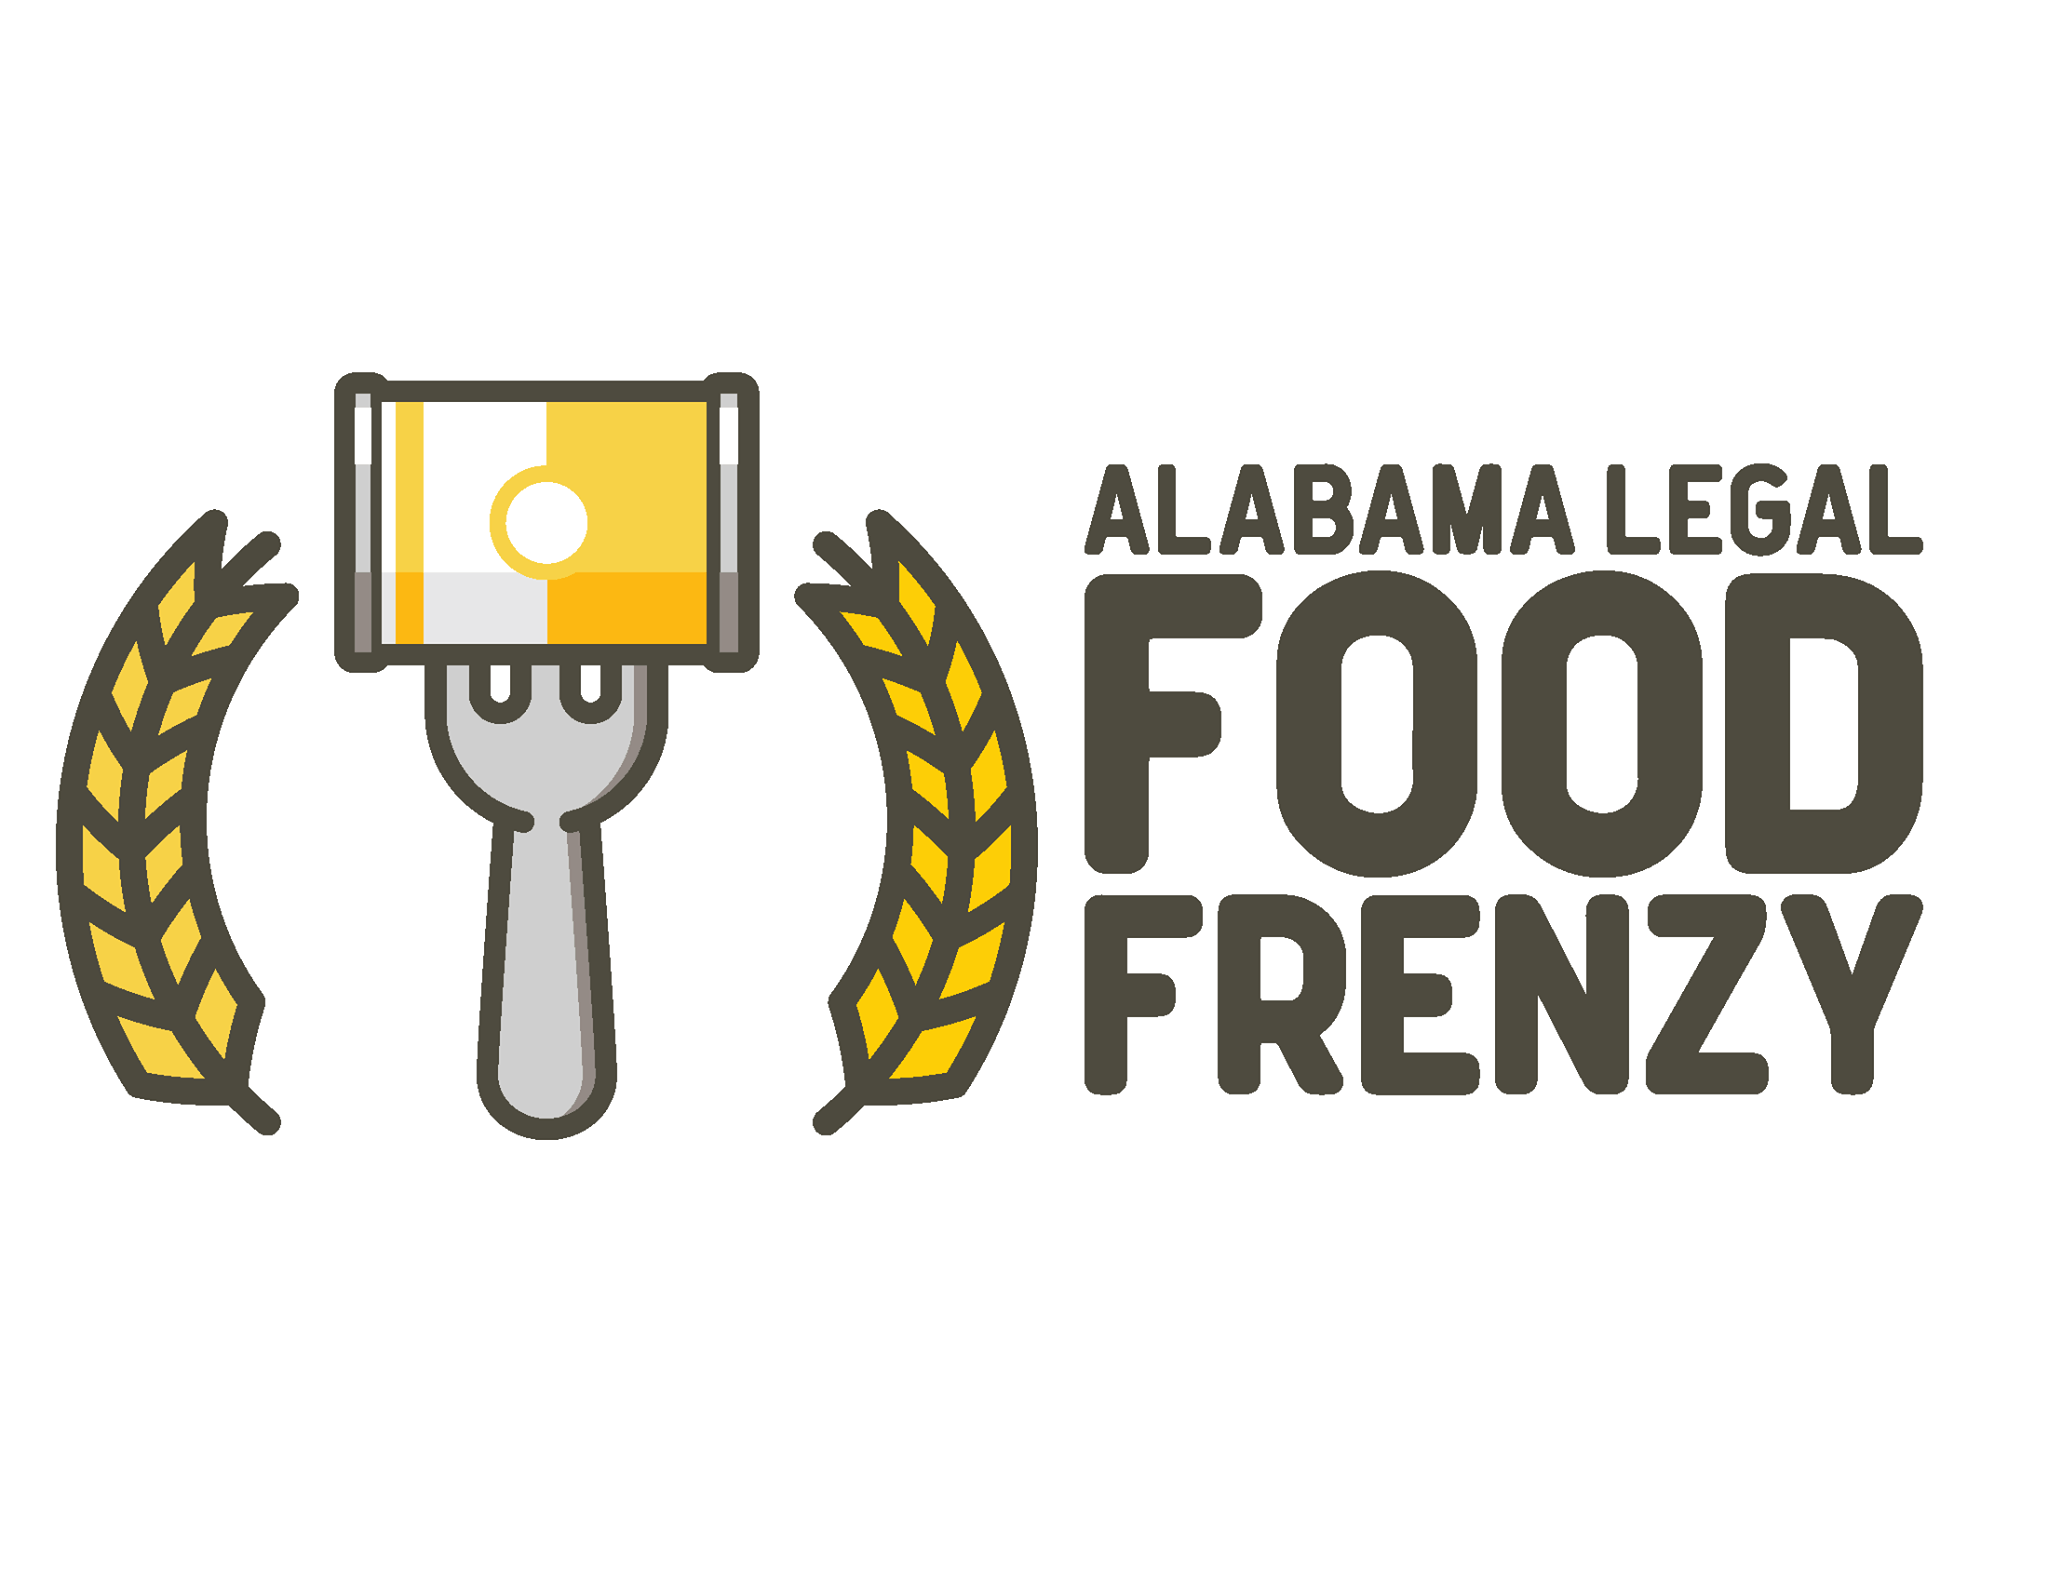 Taylor Martino competing in Alabama Legal Food Frenzy challenge